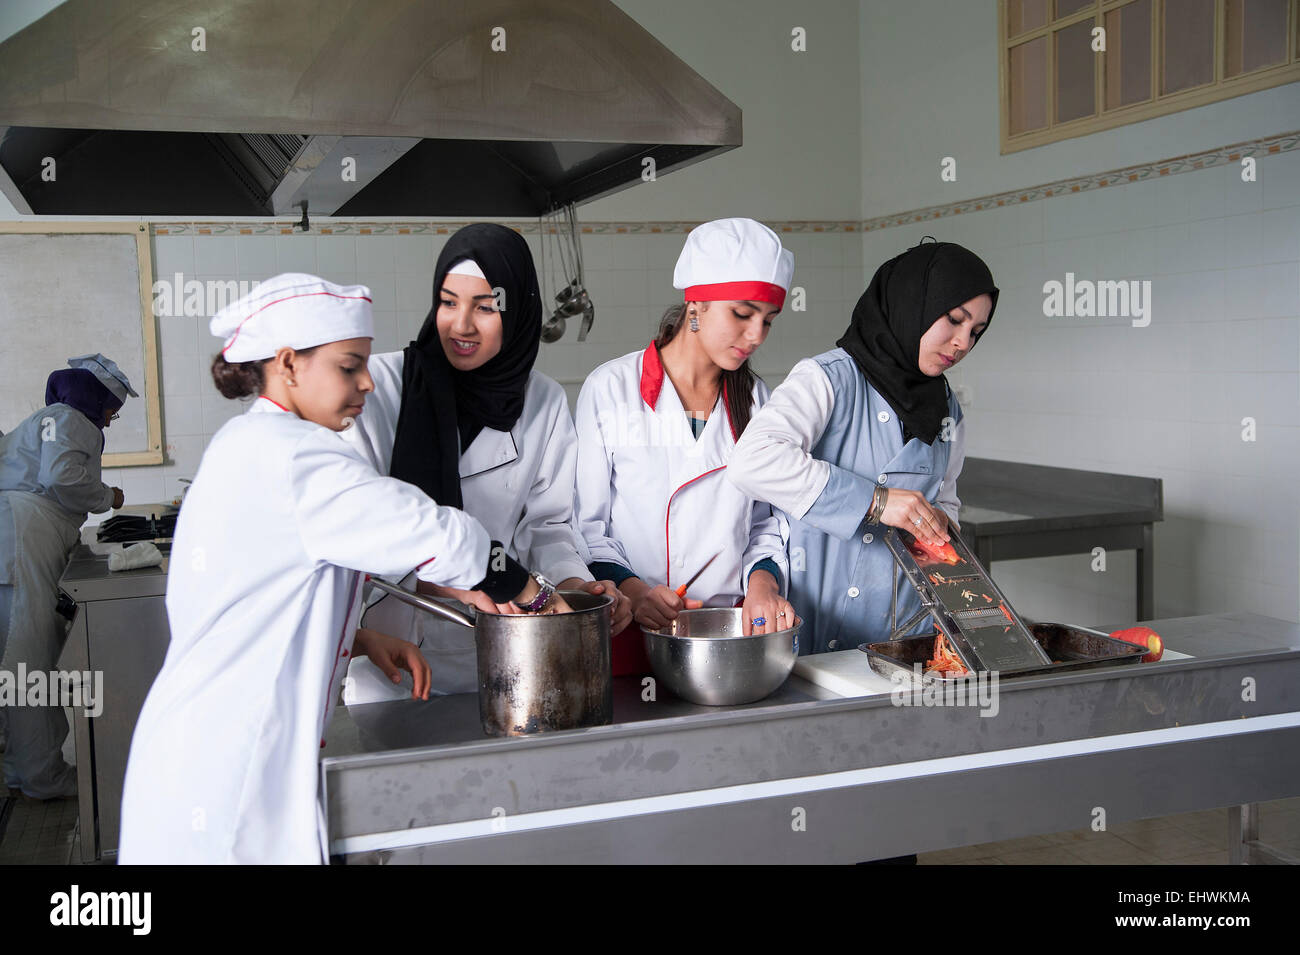 TUNISIA, TUNIS: Students at at Tunis' Tourism School learn cooking, baking, waitering and also have classroom - Stock Image